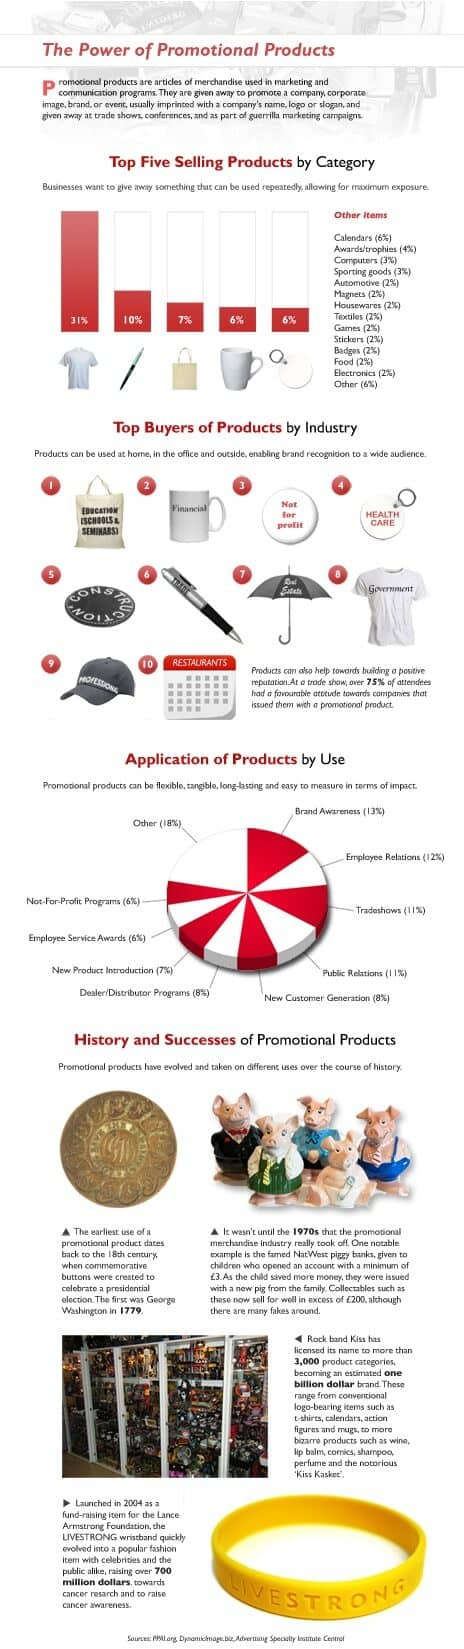 Powerful Ways to Make Your Promotional Products Work for You